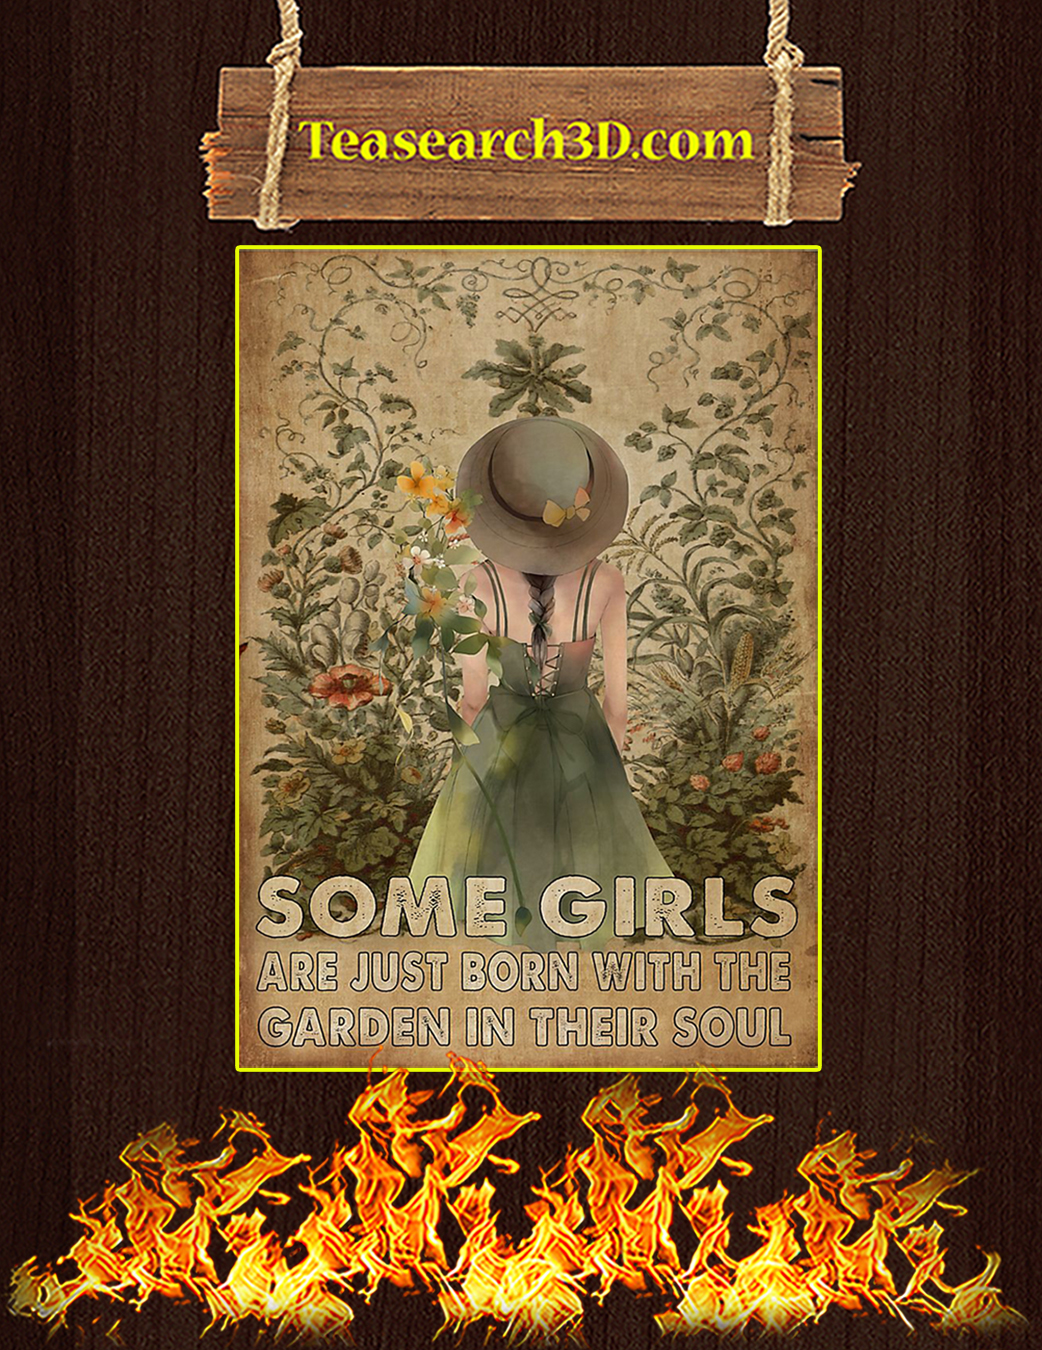 Some girls are just born with garden in their soul poster A1